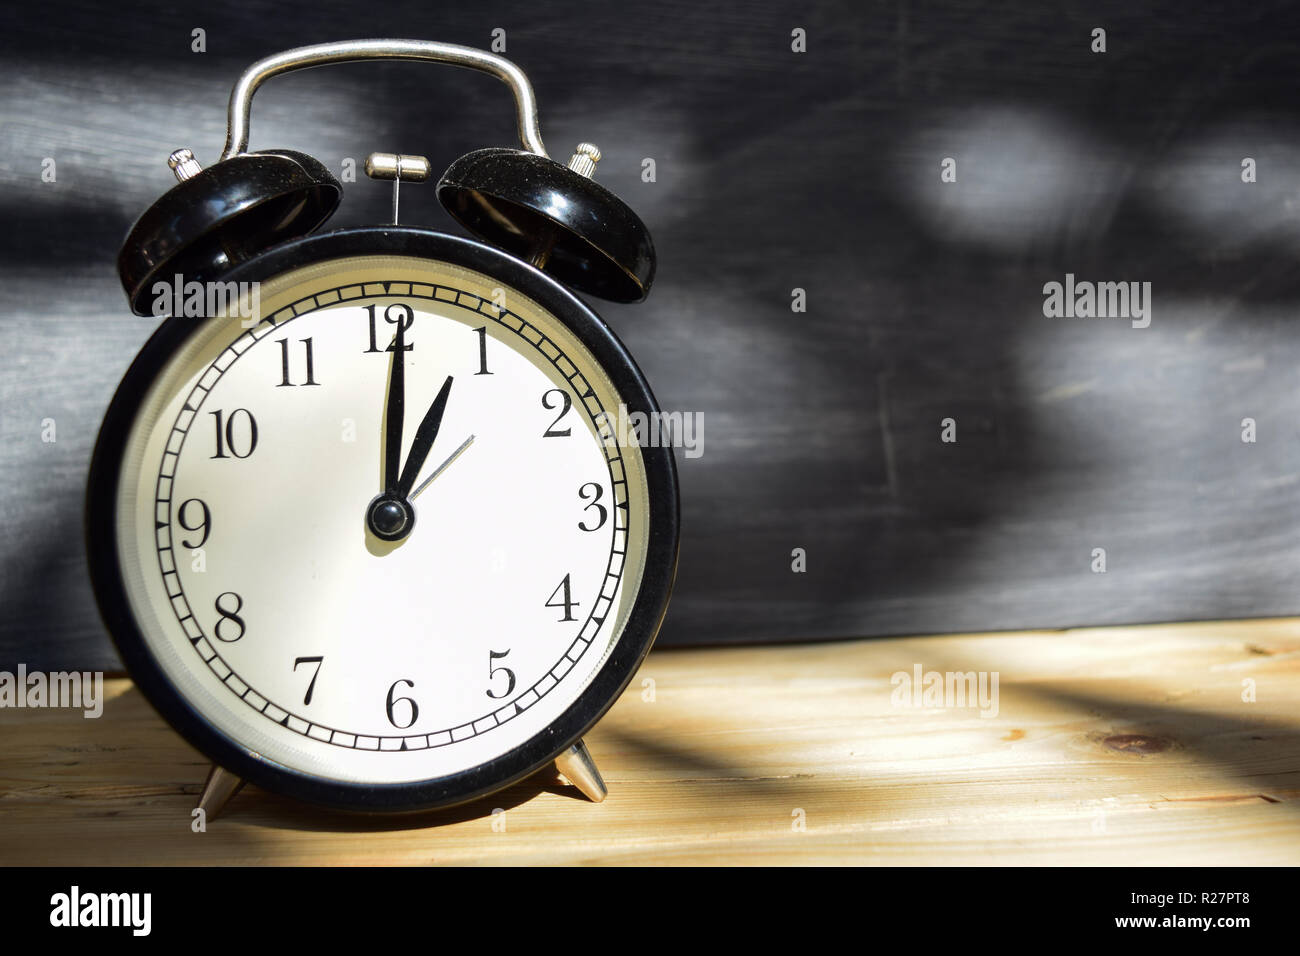 1 am/pm Back to school concept. Alarm clock on wooden with blackboard on background - Stock Image